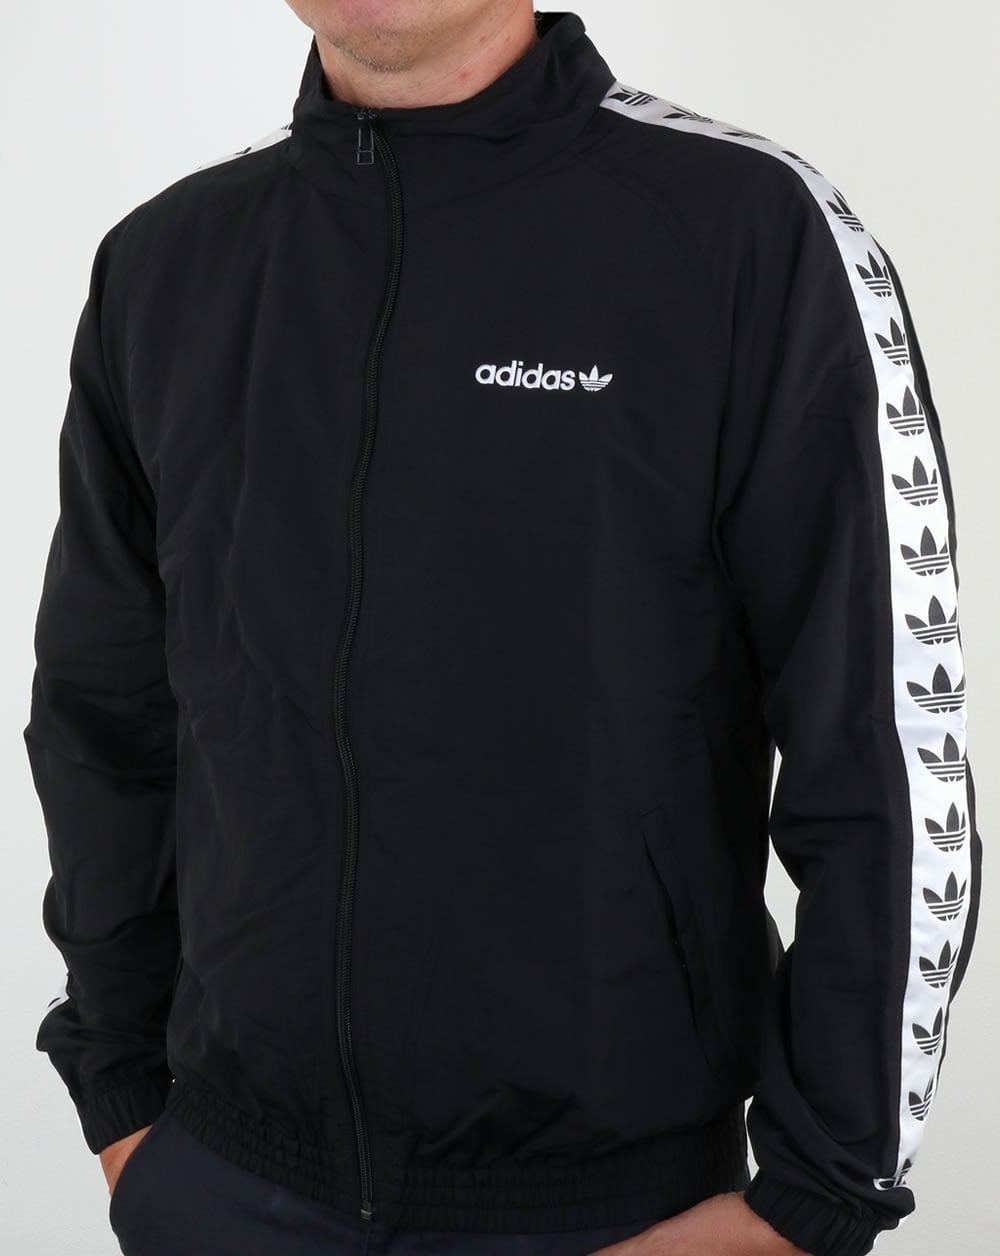 26408d2c417e Buy adidas black and white windbreaker   OFF59% Discounted